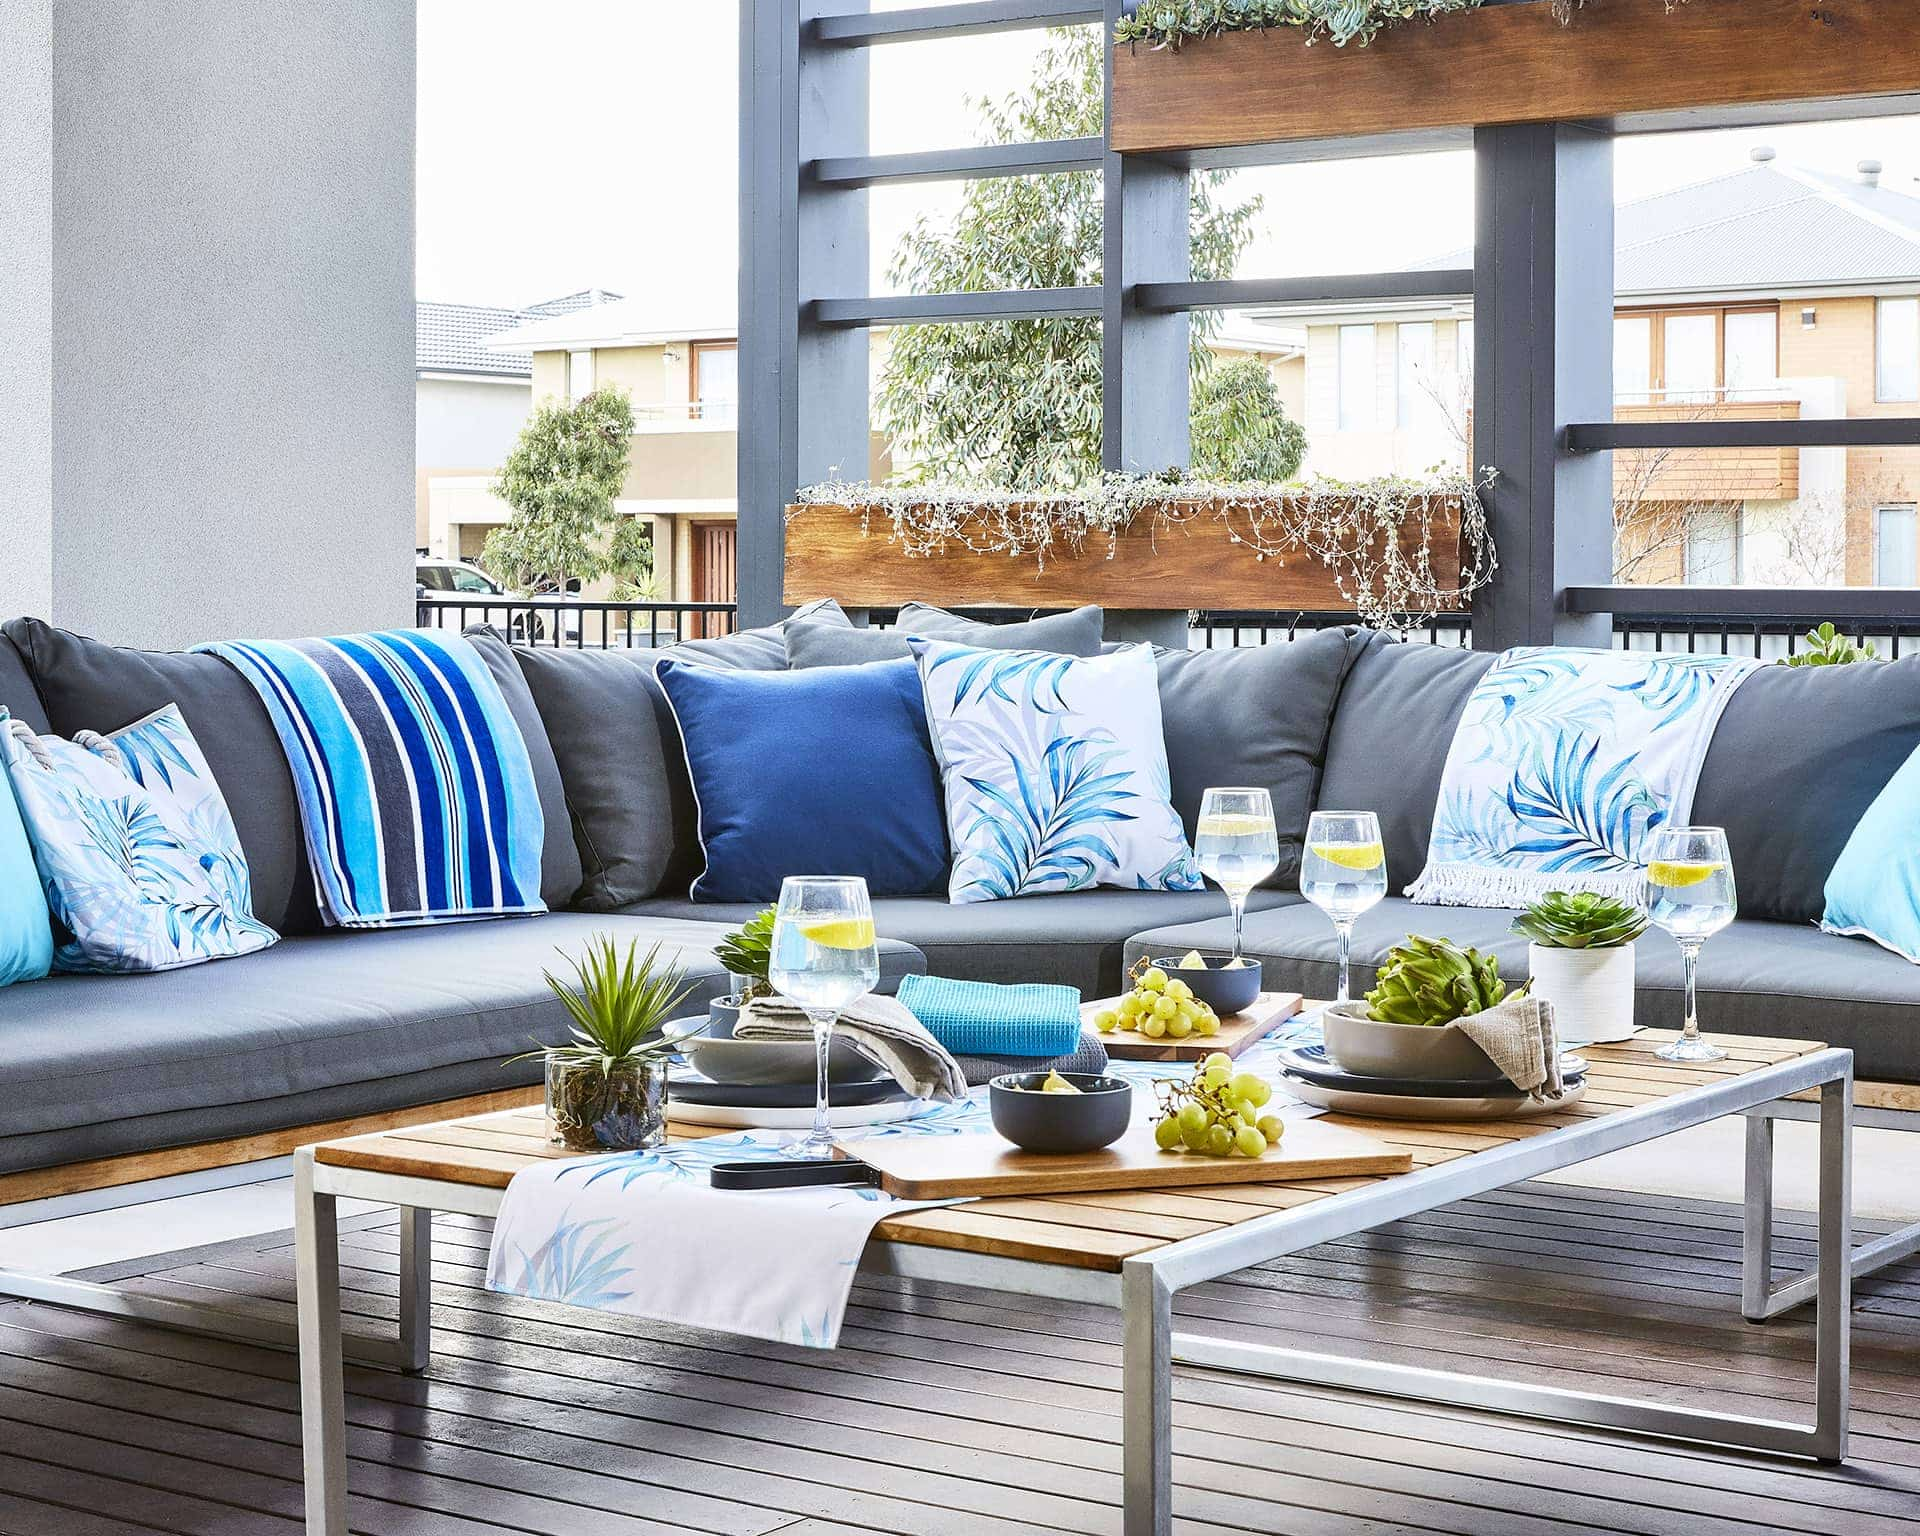 spring decorating ideas from lorraine lea outdoor cushions on outdoor furniture lounge set